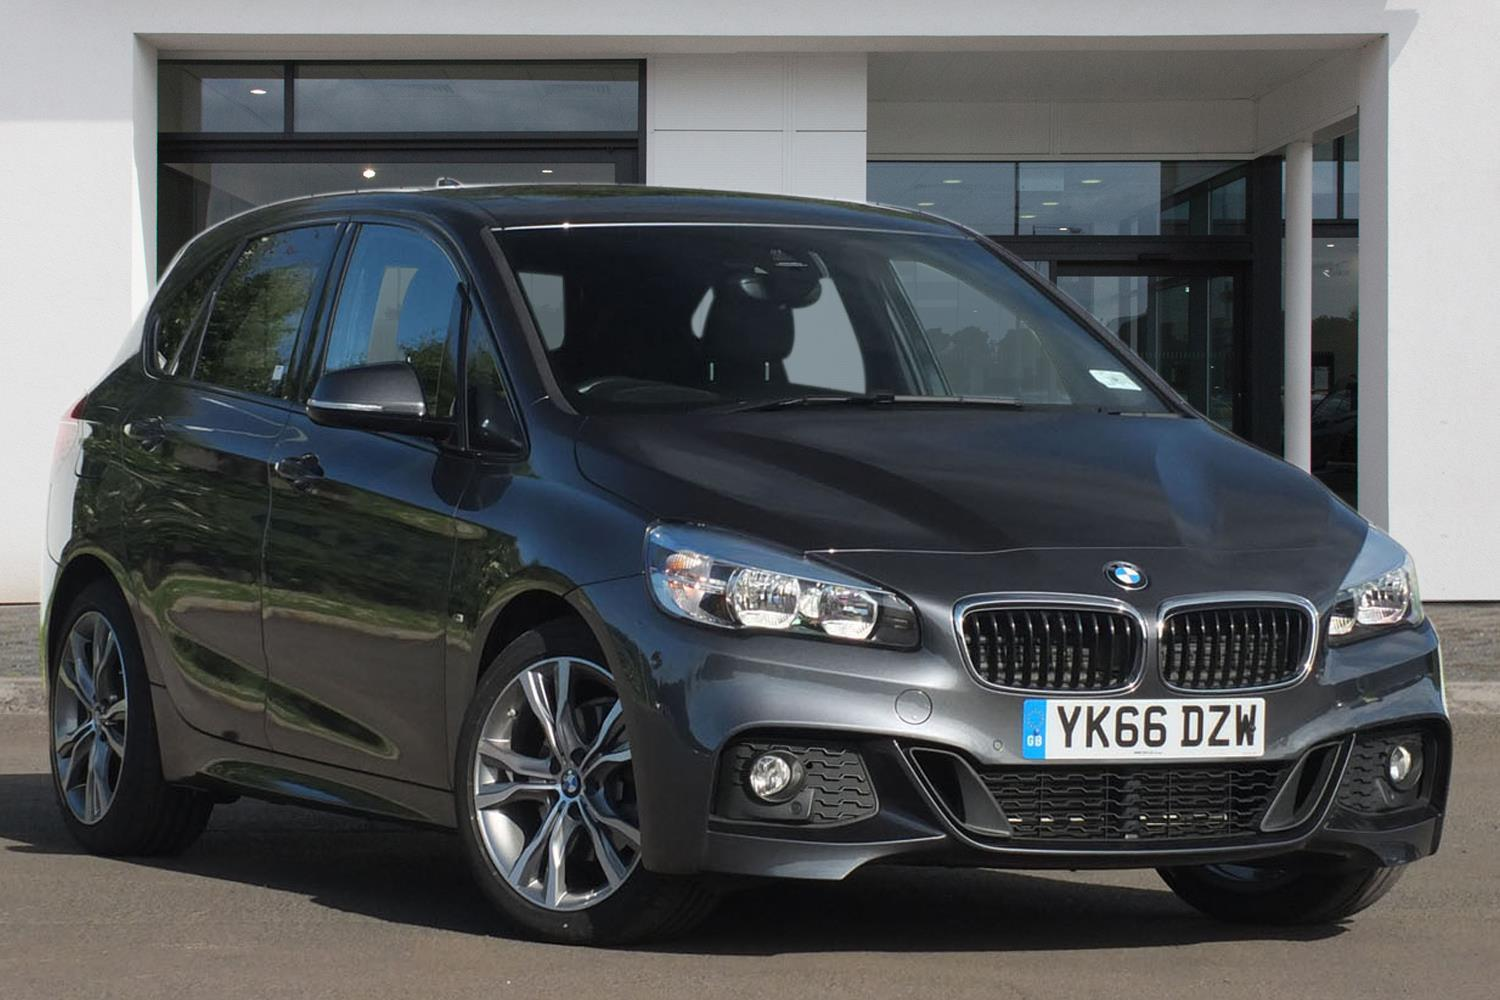 BMW 2 Series Active Tourer 5-Door YK66DZW - Image 3